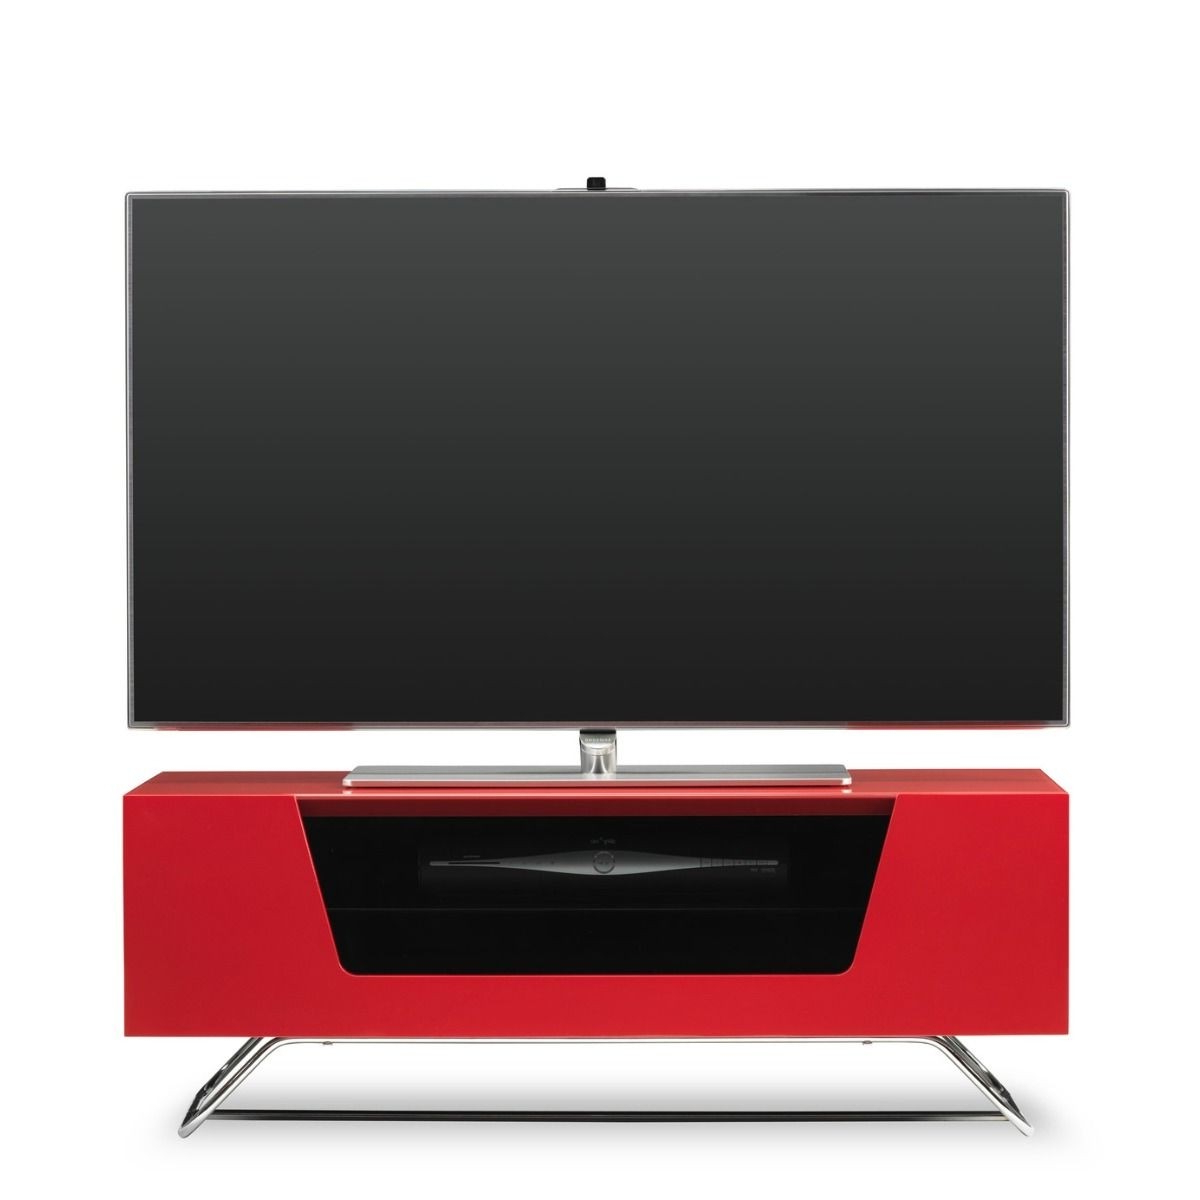 Red Gloss Tv Cabinets Within Well Known Alphason Chromium 2 Tv Stand Cro2 1000Cb Red Red Gloss Tv Cabinet (Gallery 13 of 20)